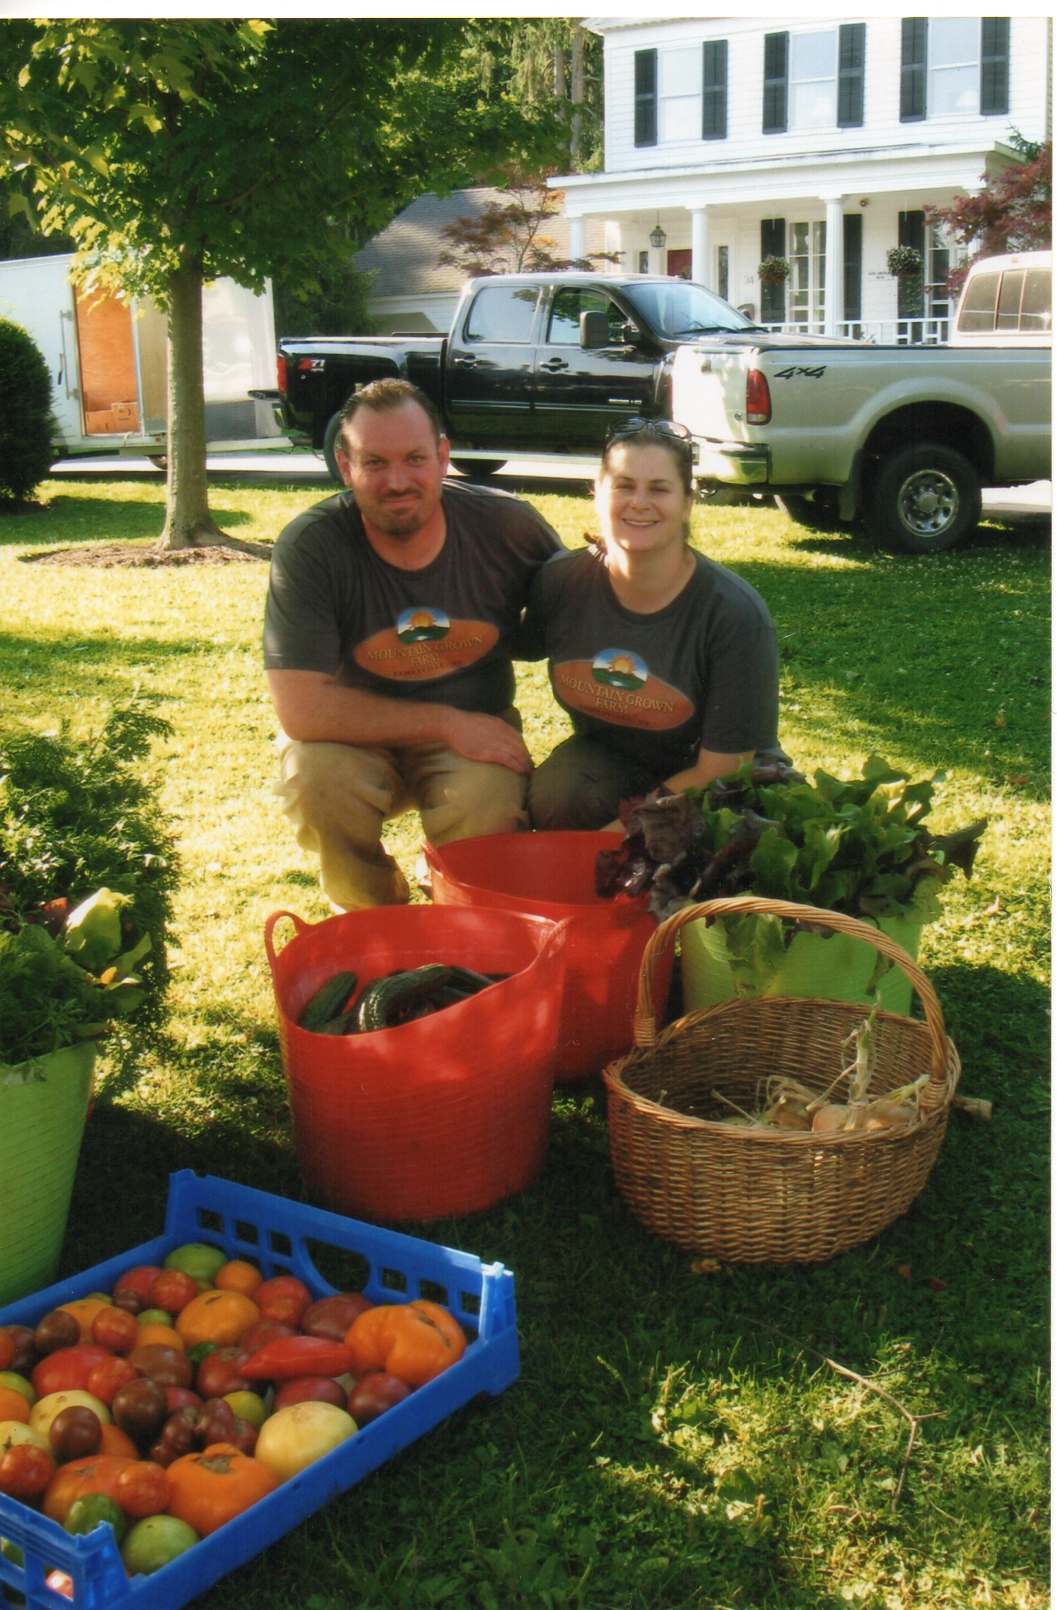 Farmers Kevin and Lacey in Cazenovia, NY in 2014.